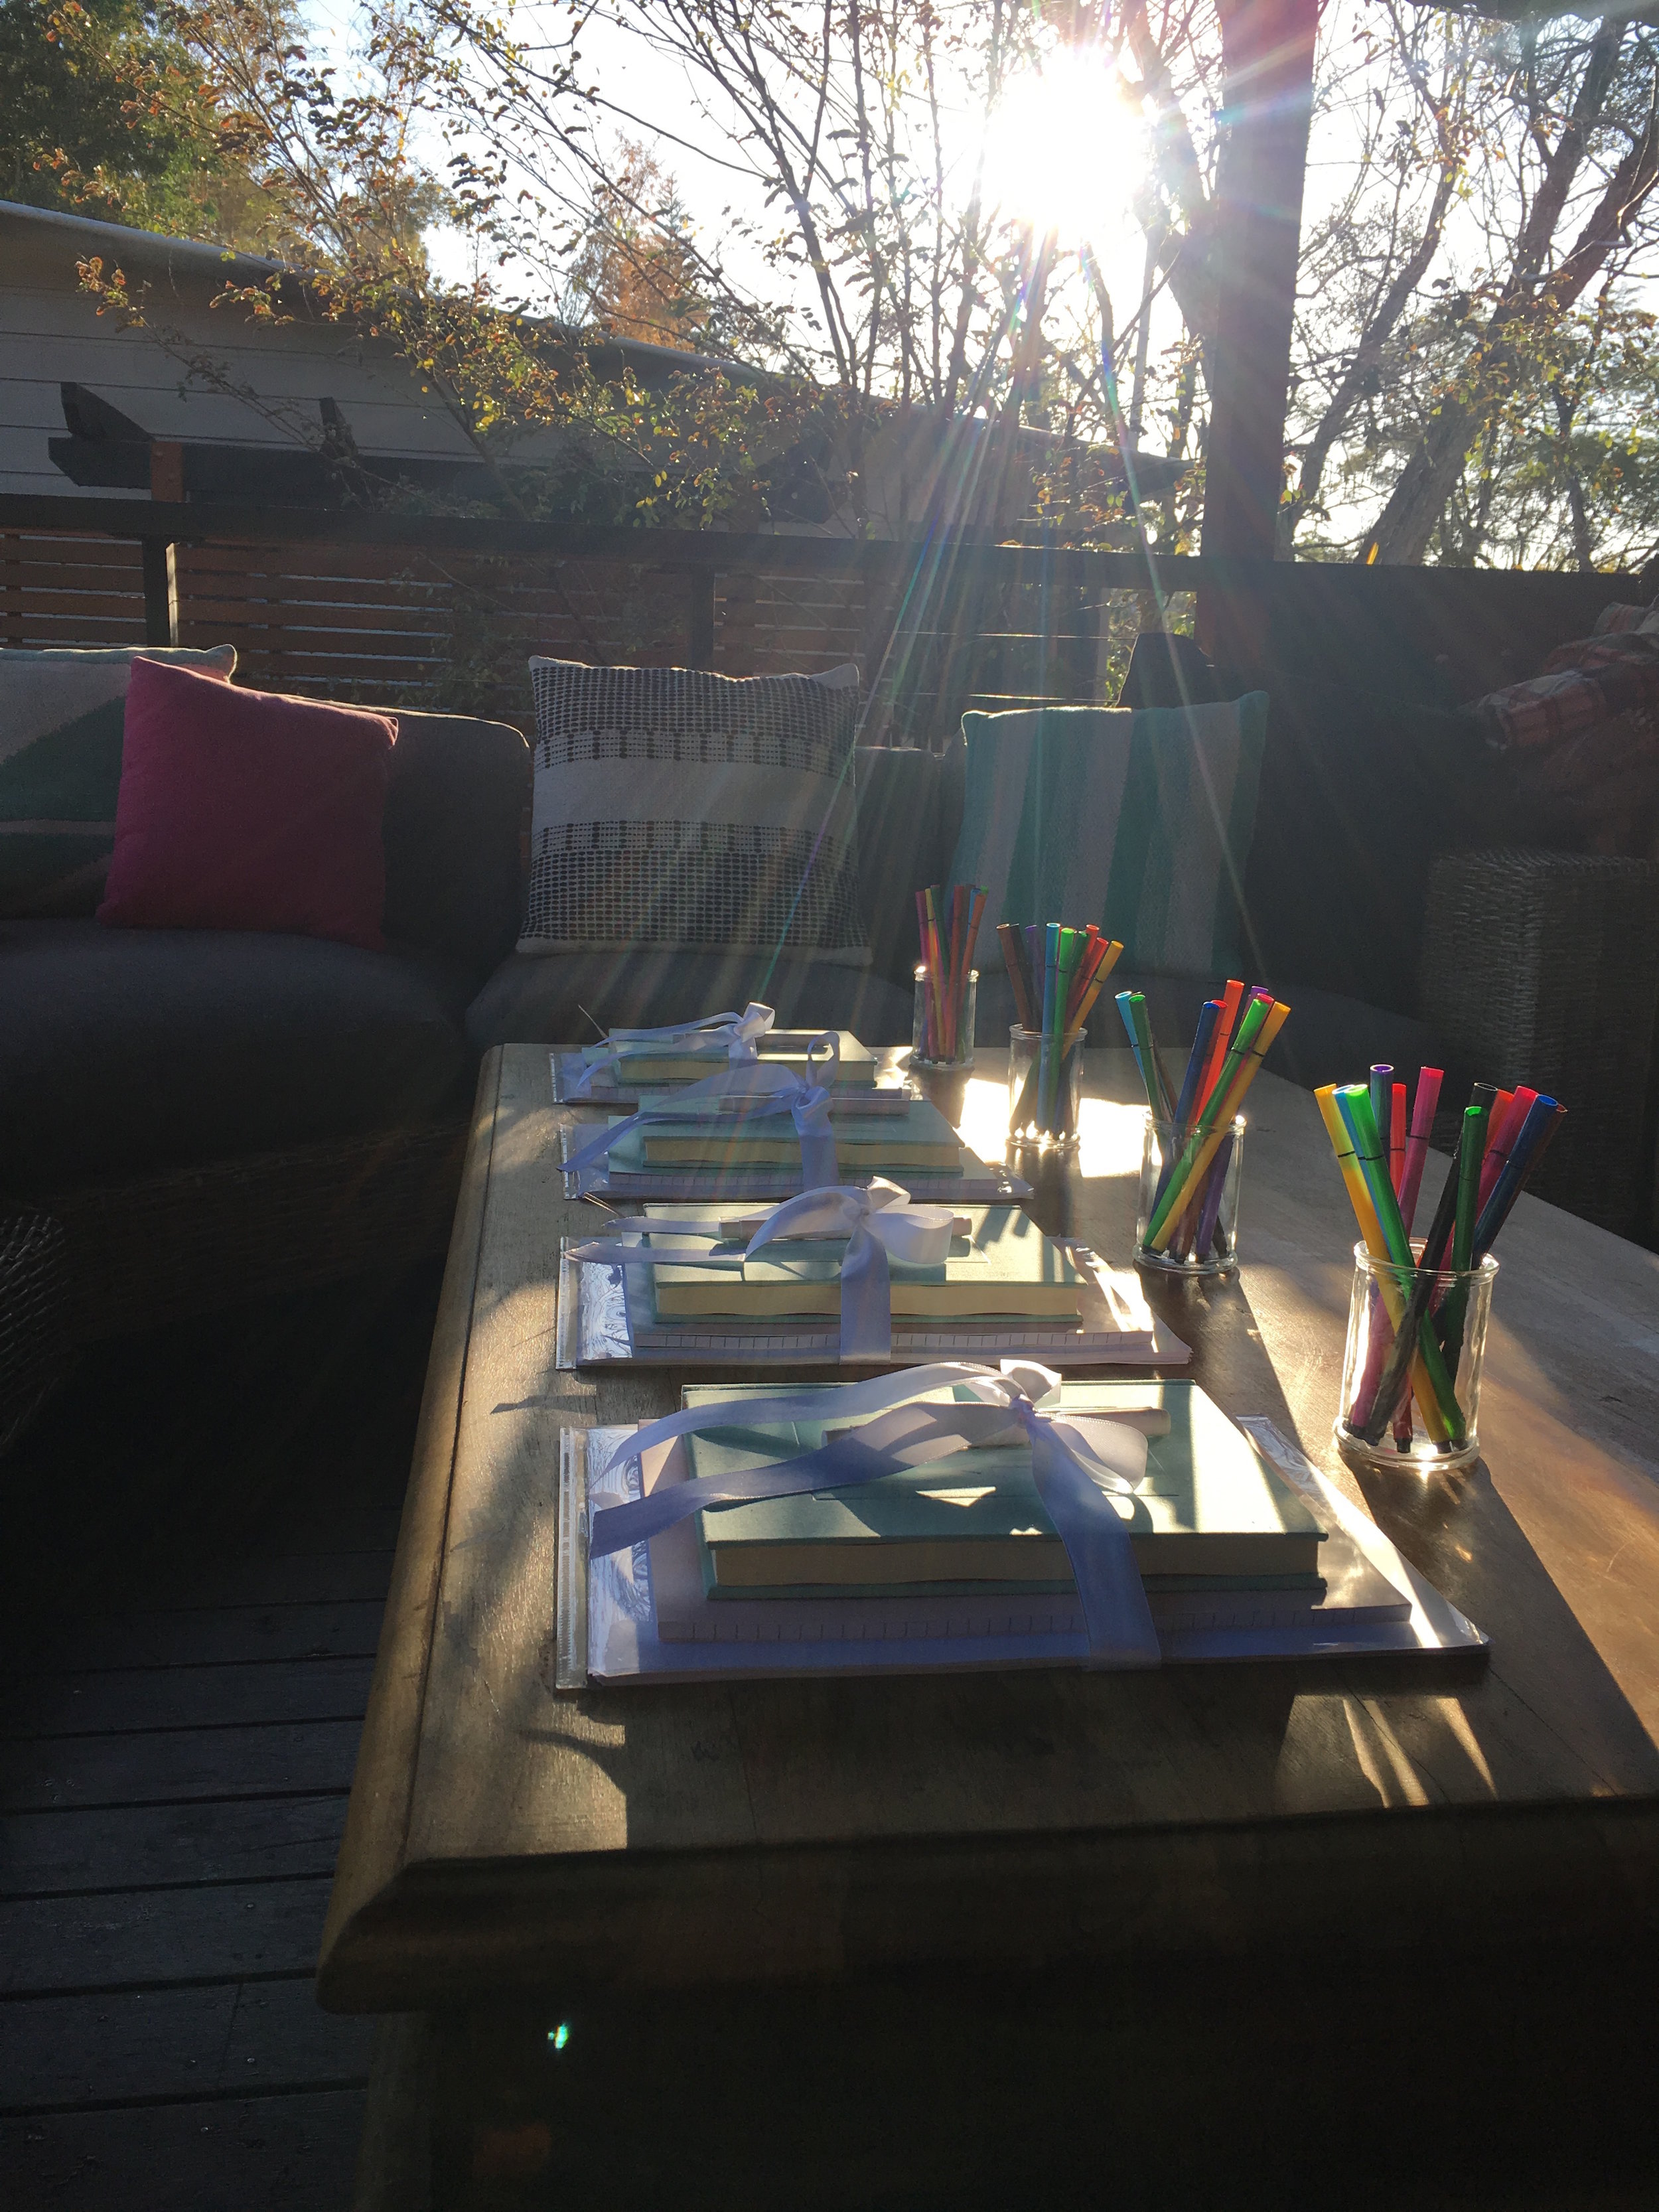 CWC2 Sunny spots to study